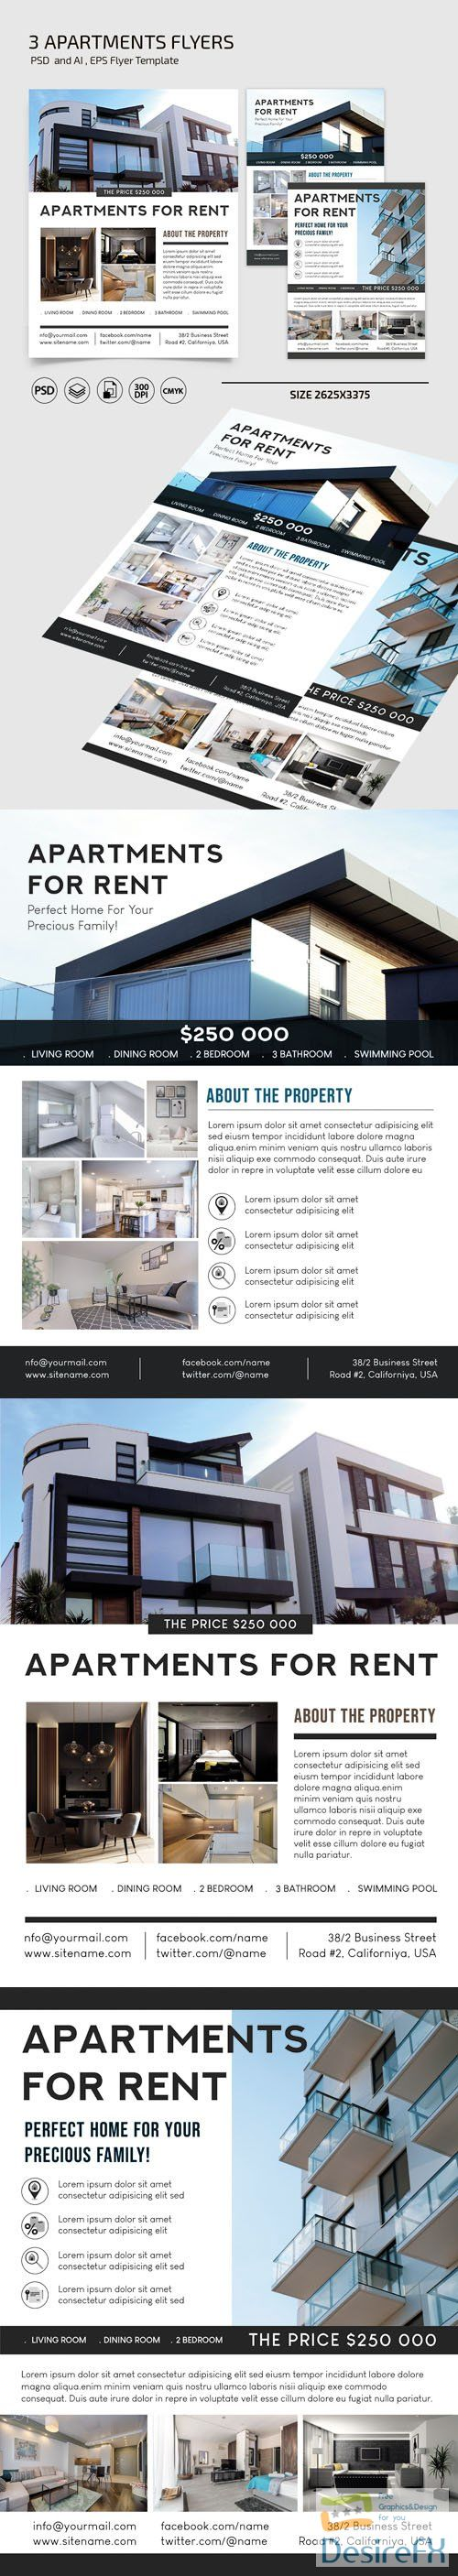 Apartments Flyers Vector Templates